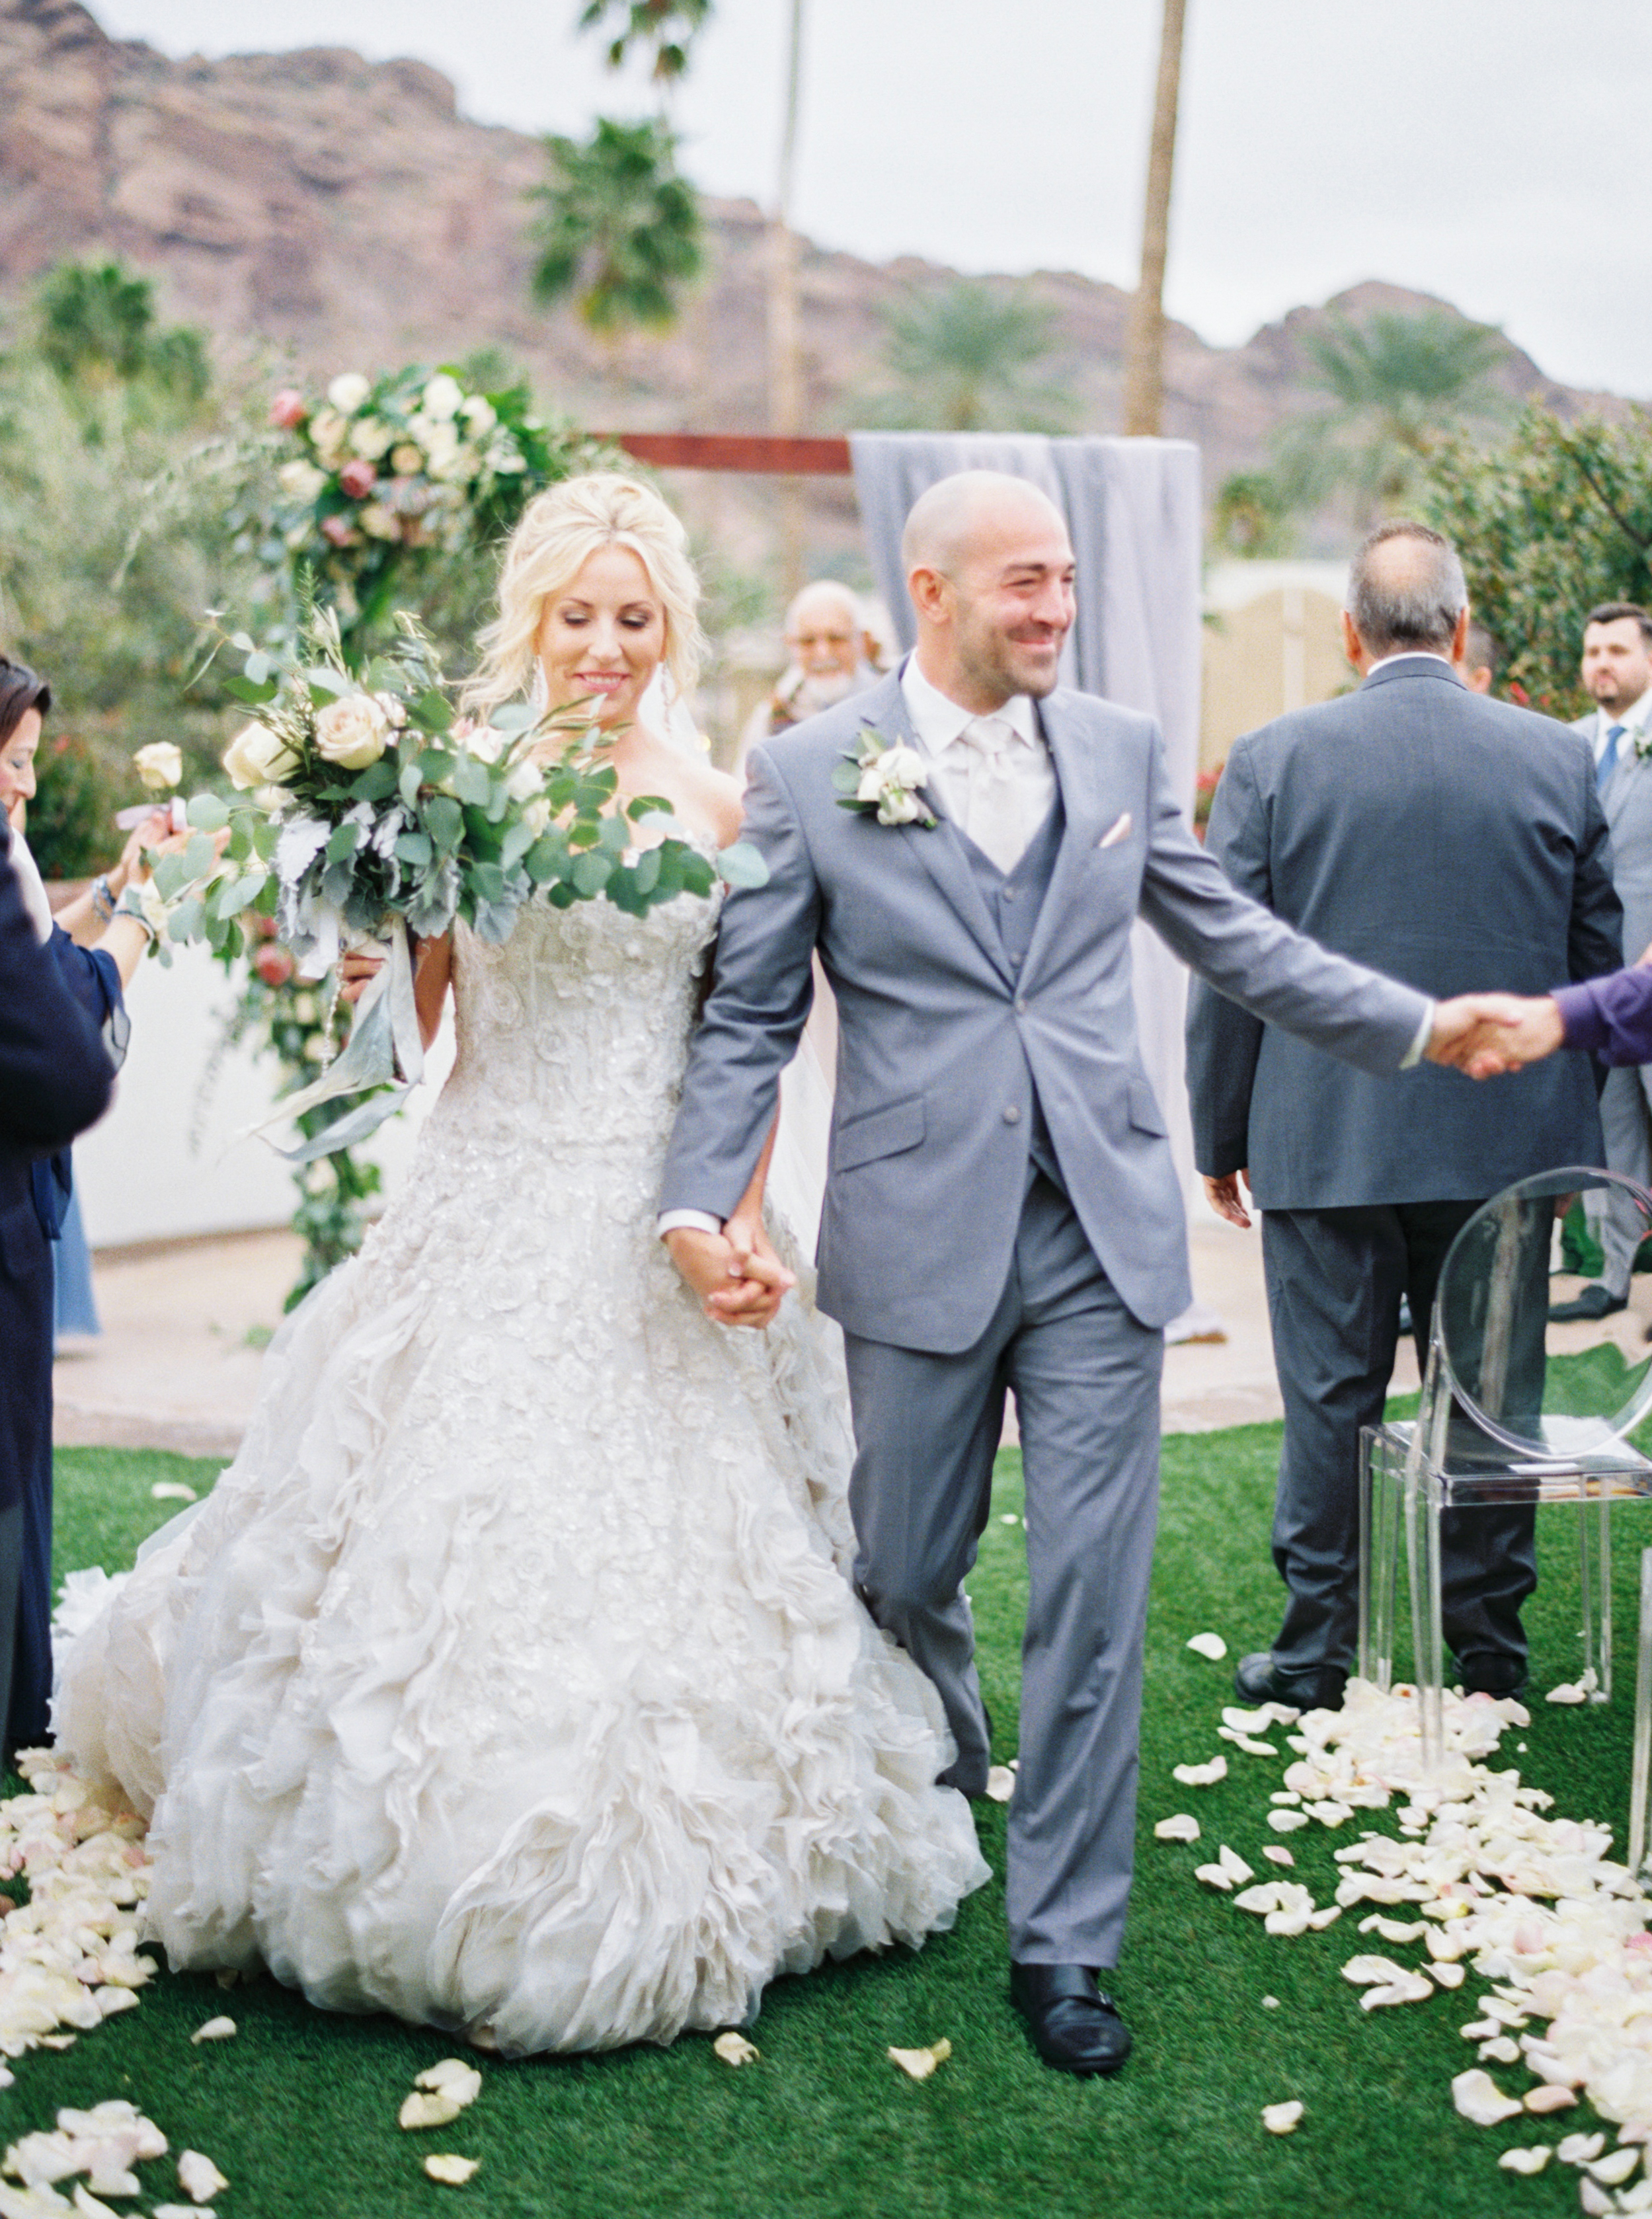 34 bride groom married leave ceremony bride groom excited walk down aisle happy couple flower aisle outdoor wedding designer wedding dress Life Design Events photos by Melissa Jill Photography.jpg